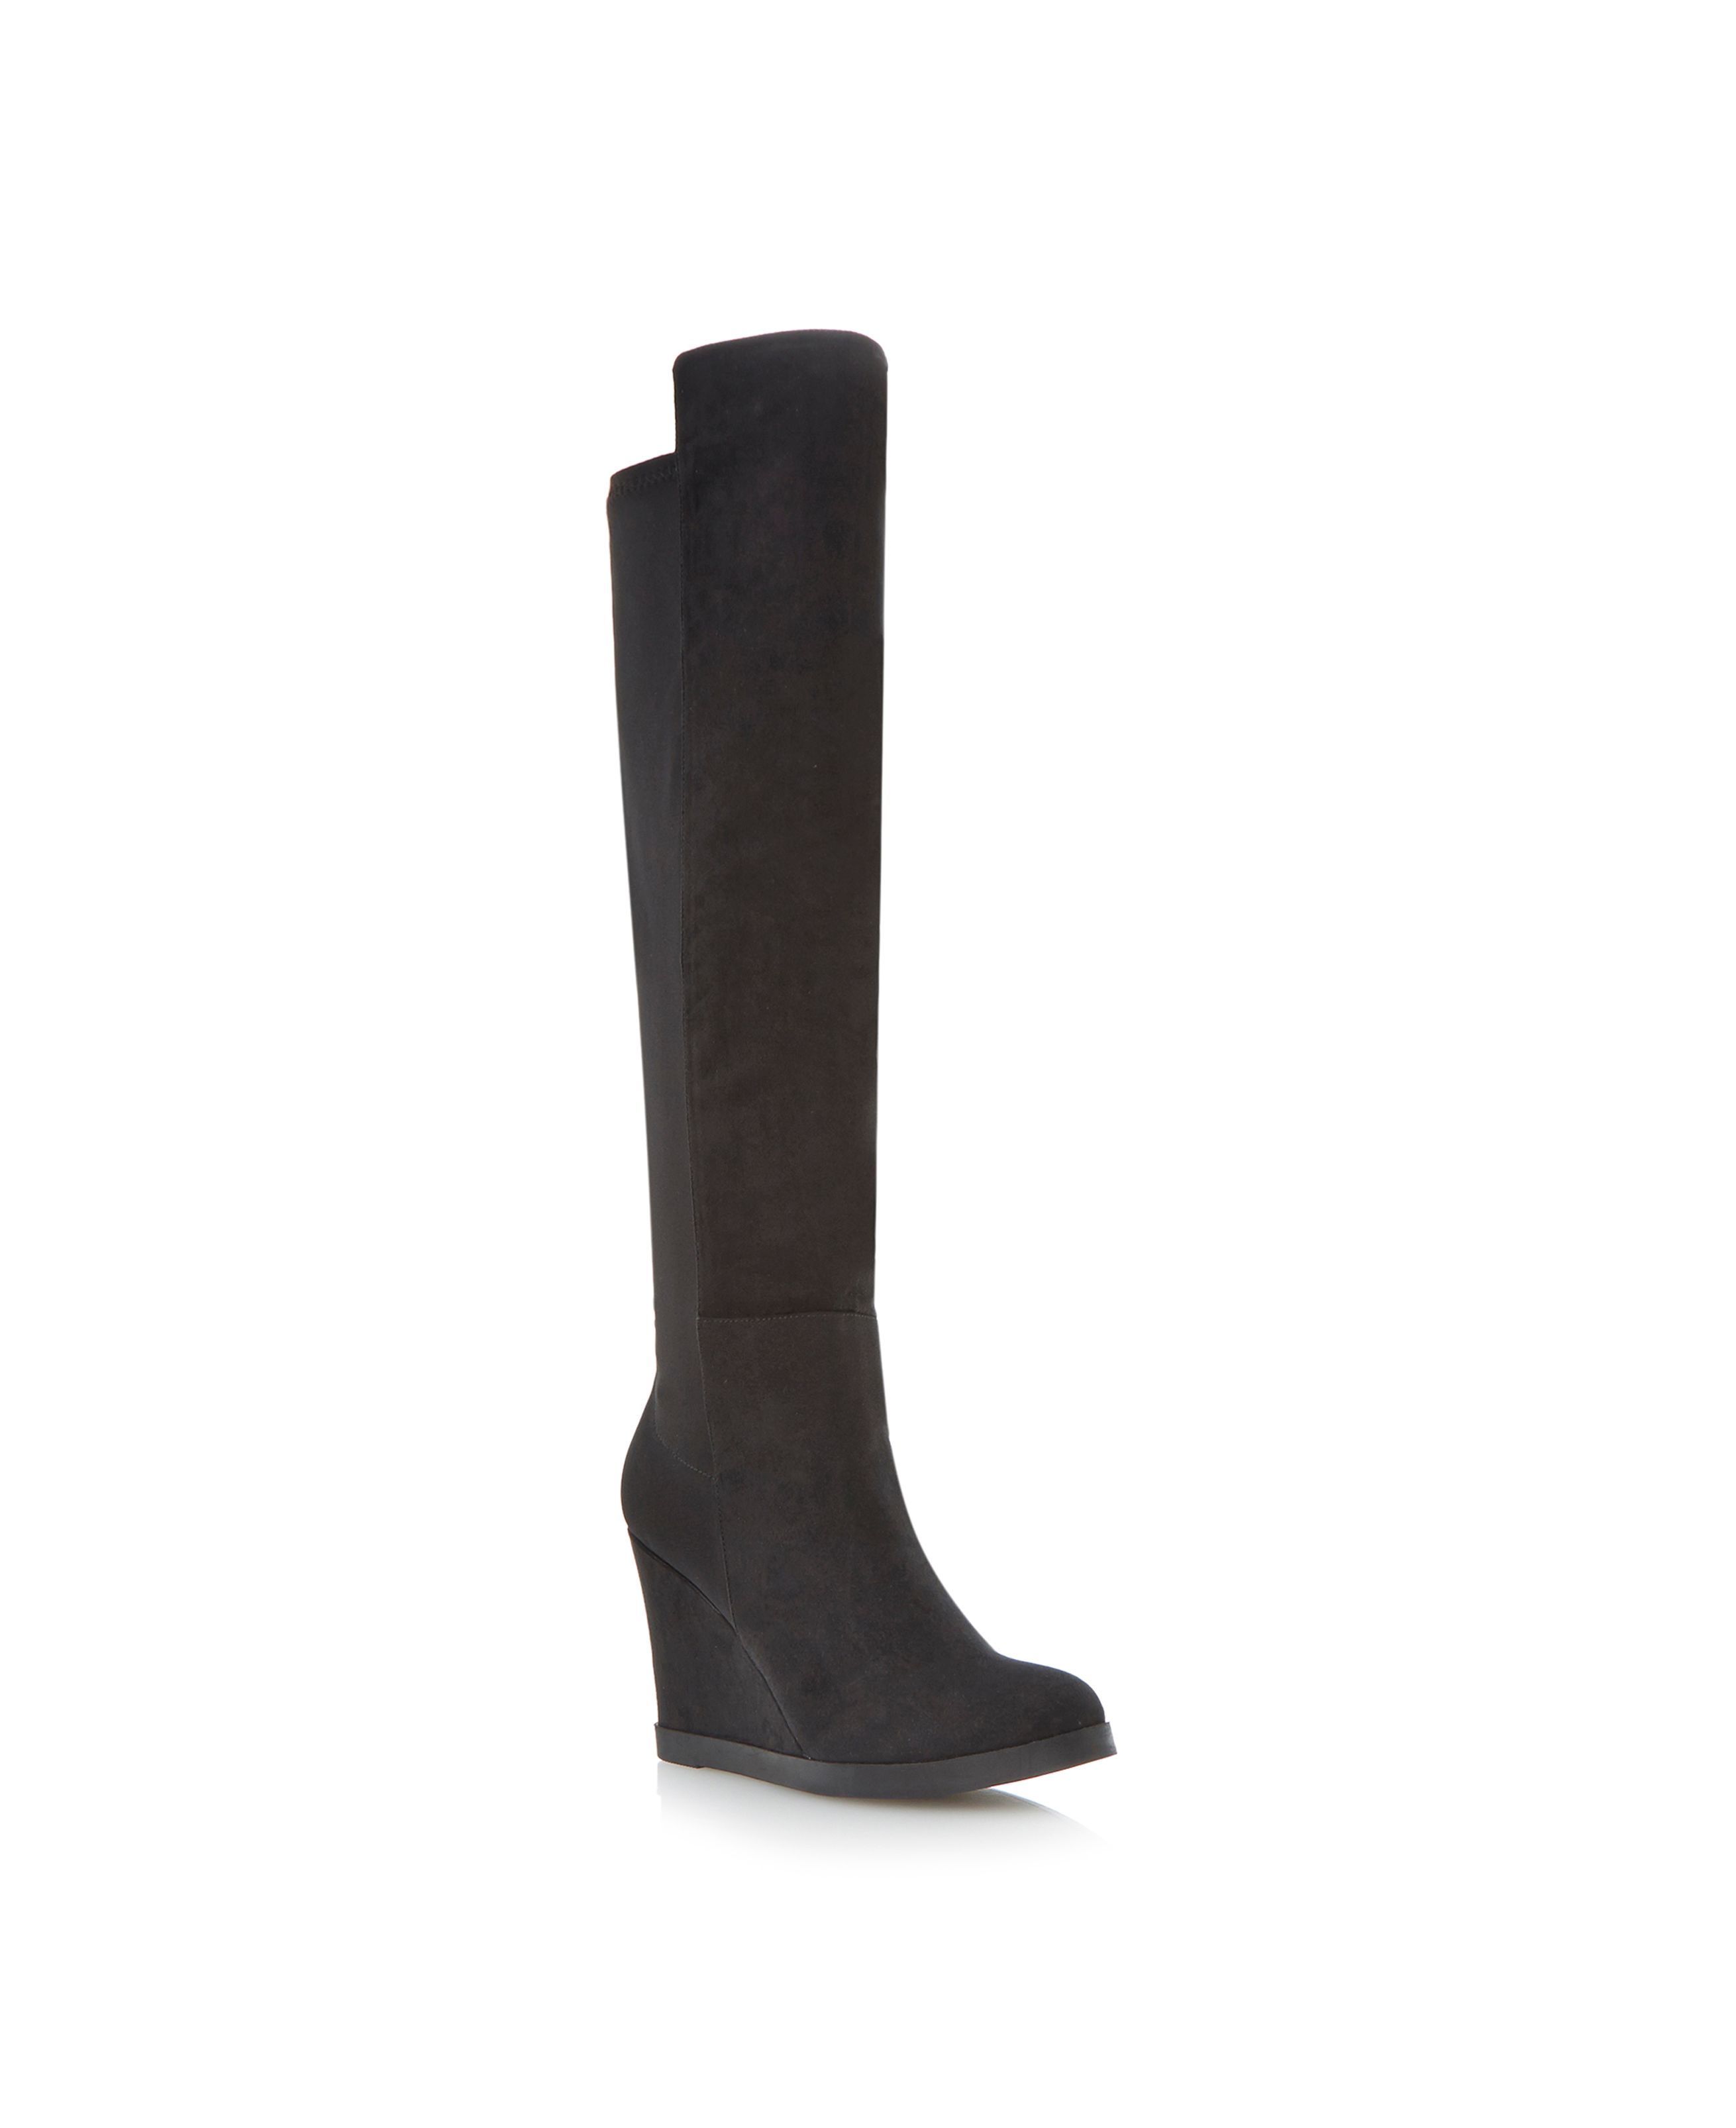 Dune Safiya Wedge Heel Over The Knee Boot in Black | Lyst